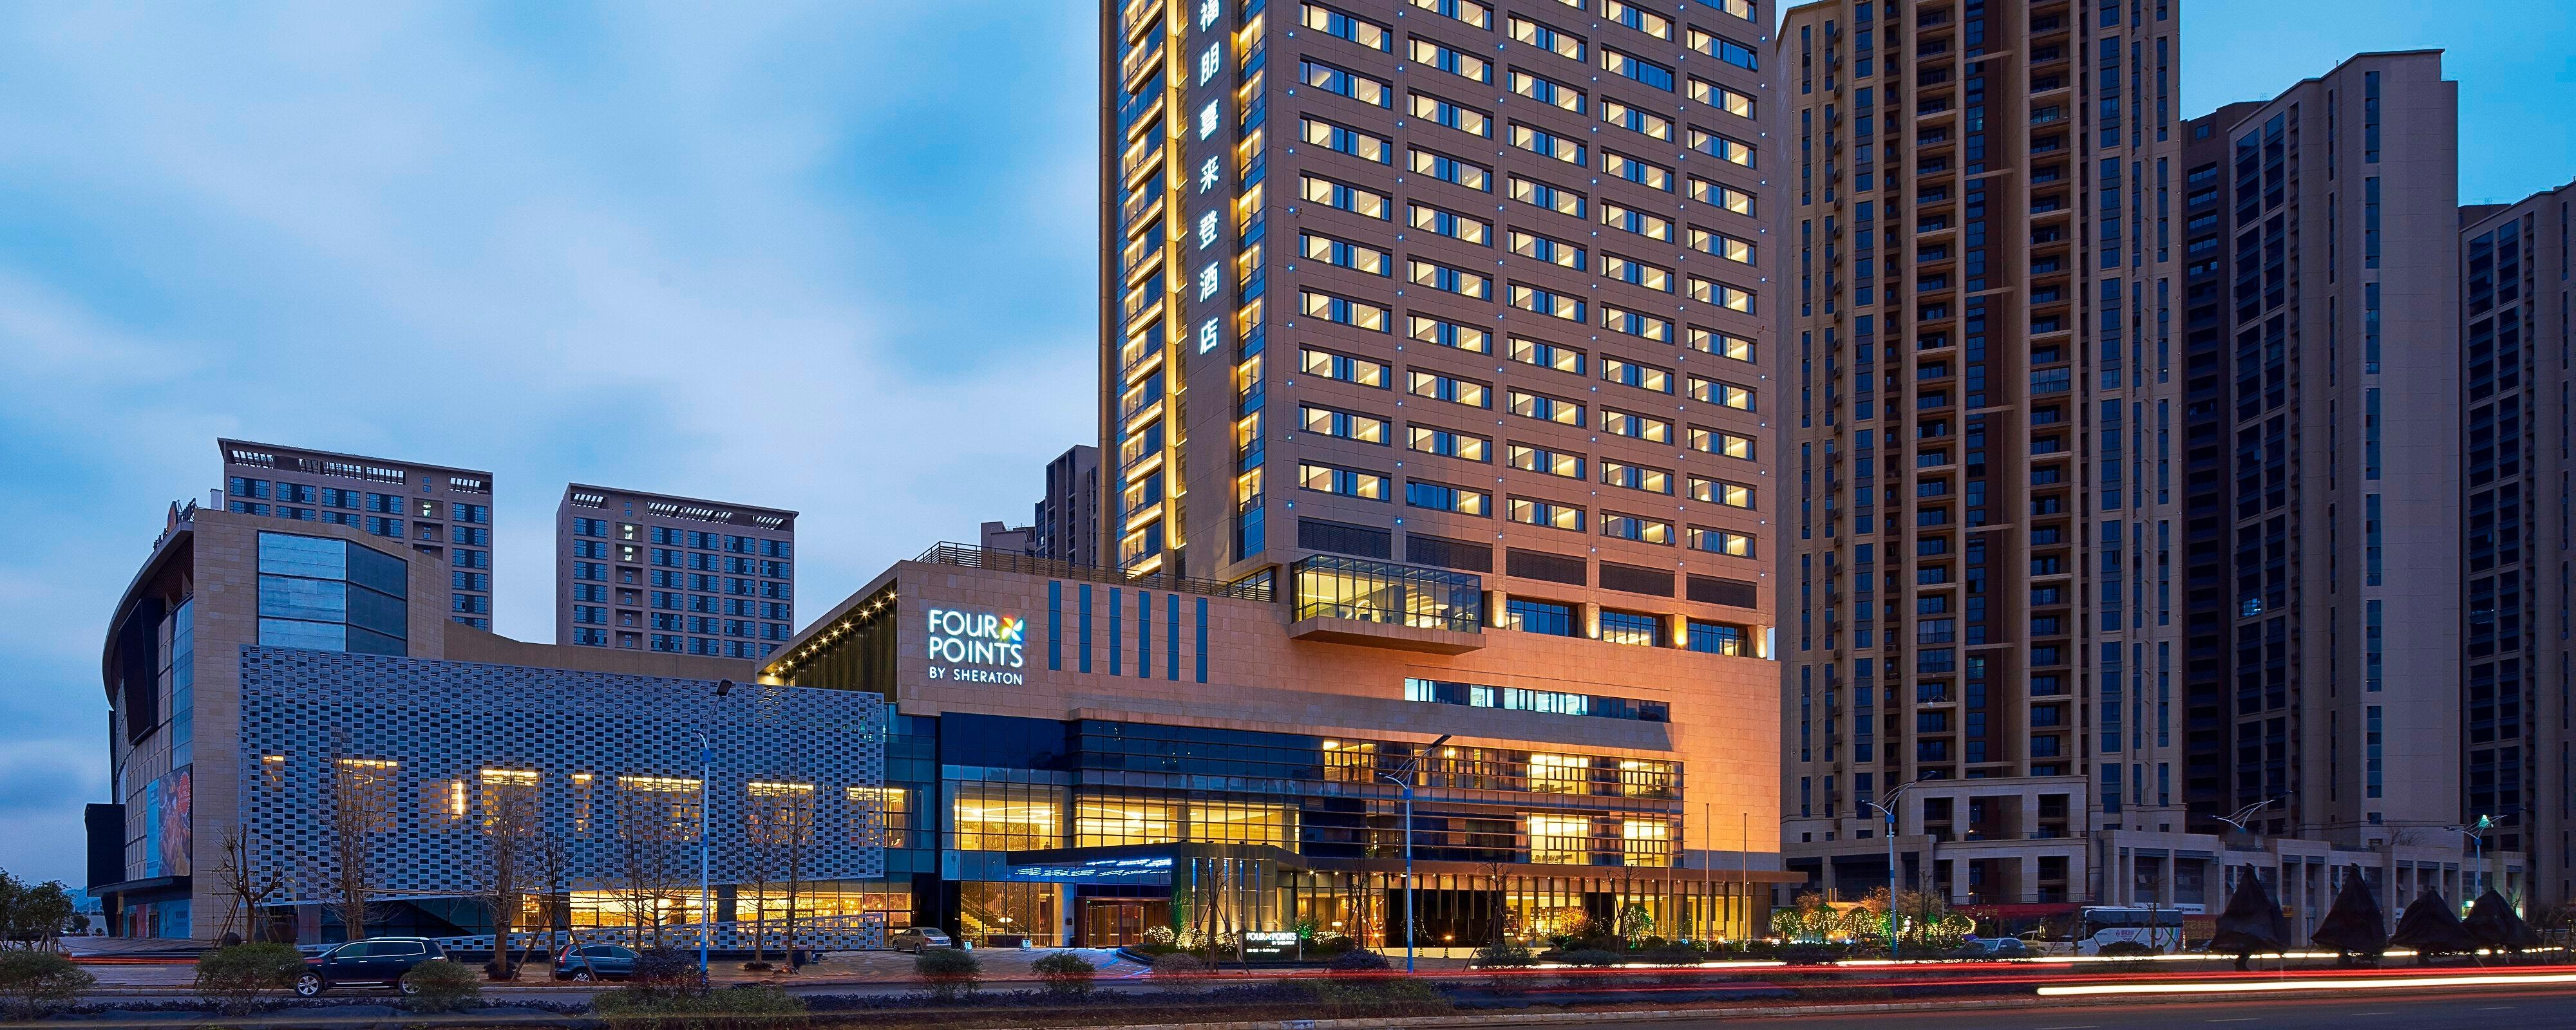 How to use a Four Points - Sheraton coupon